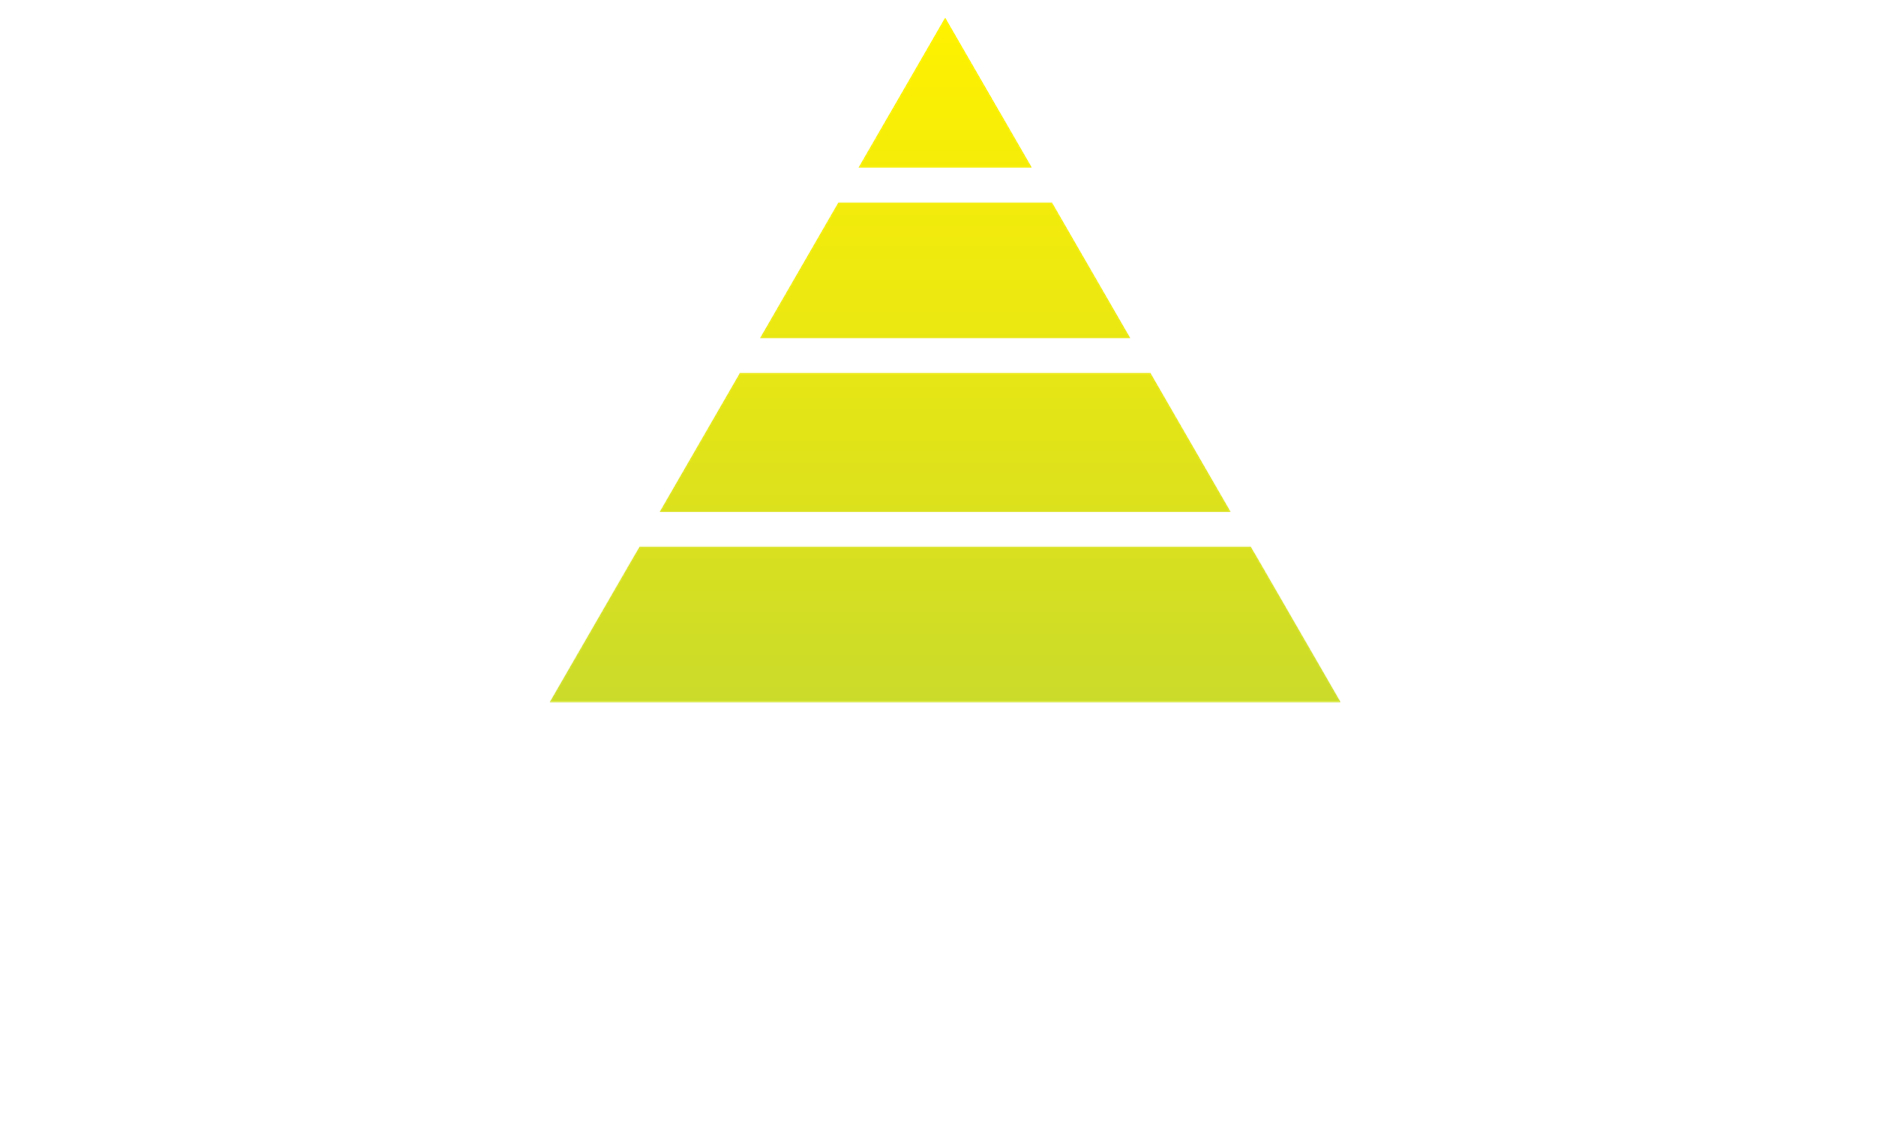 Pyramid Leisure Club